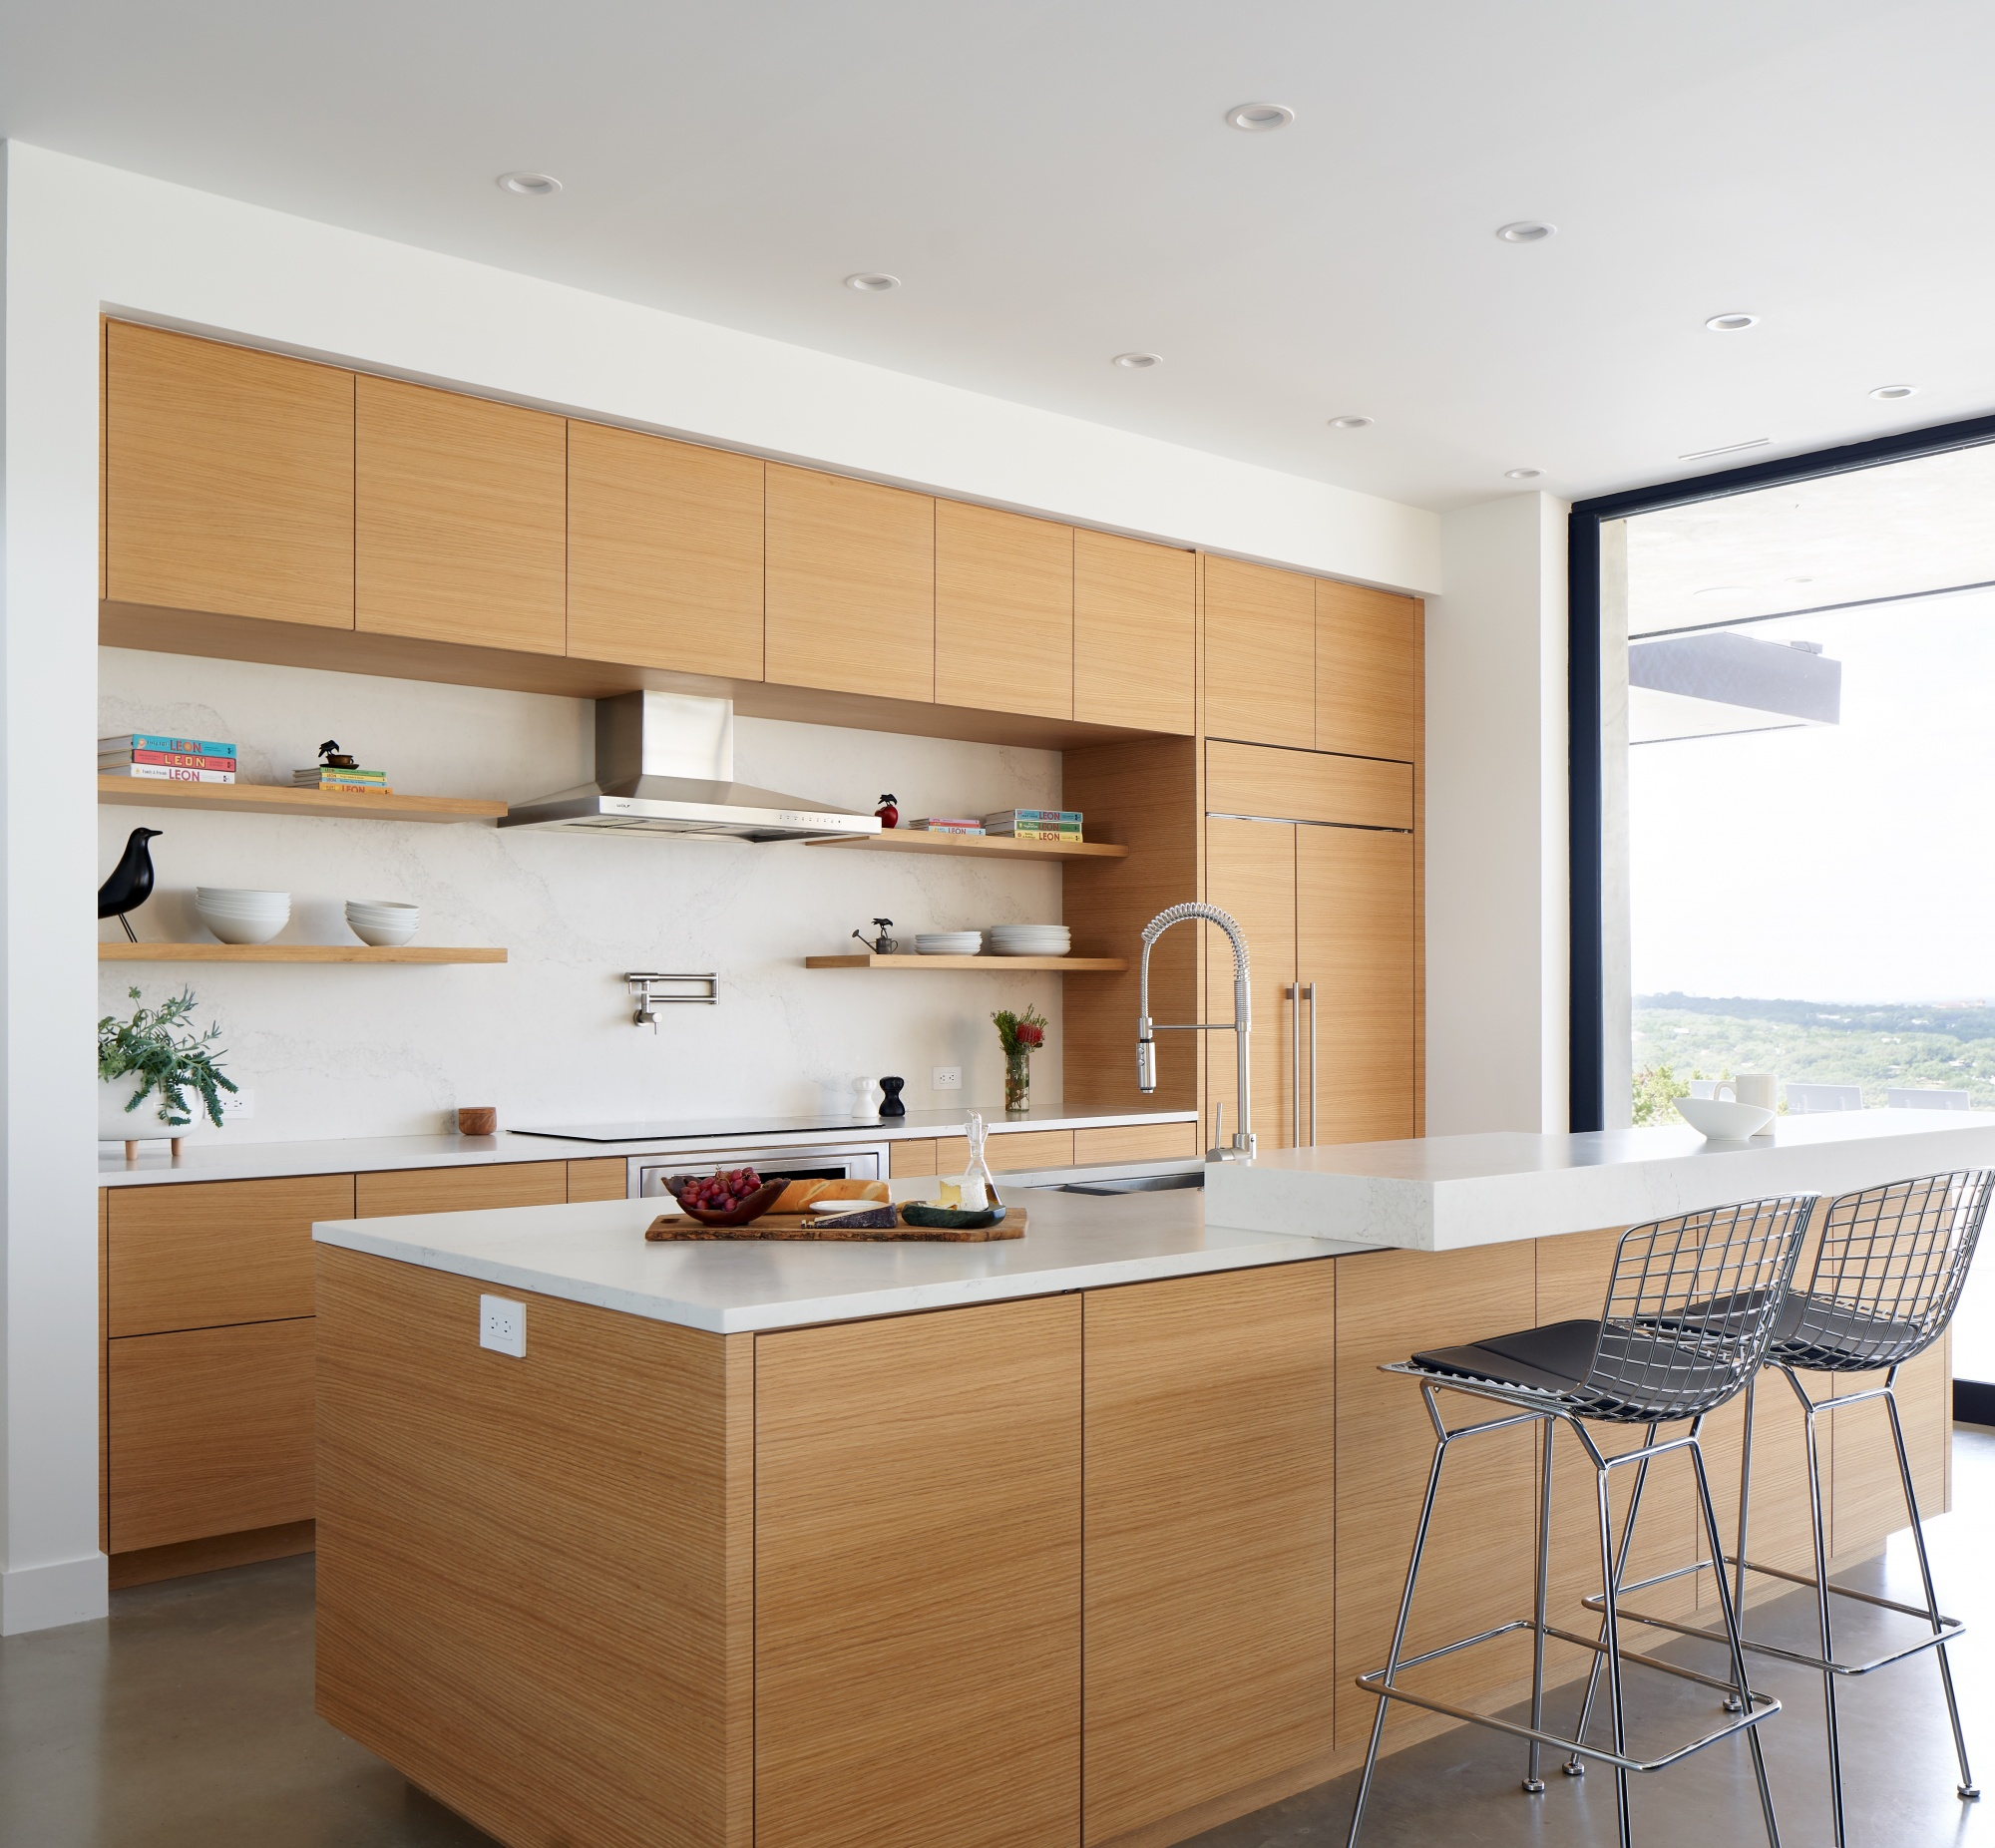 Relaxed and inviting kitchen design.